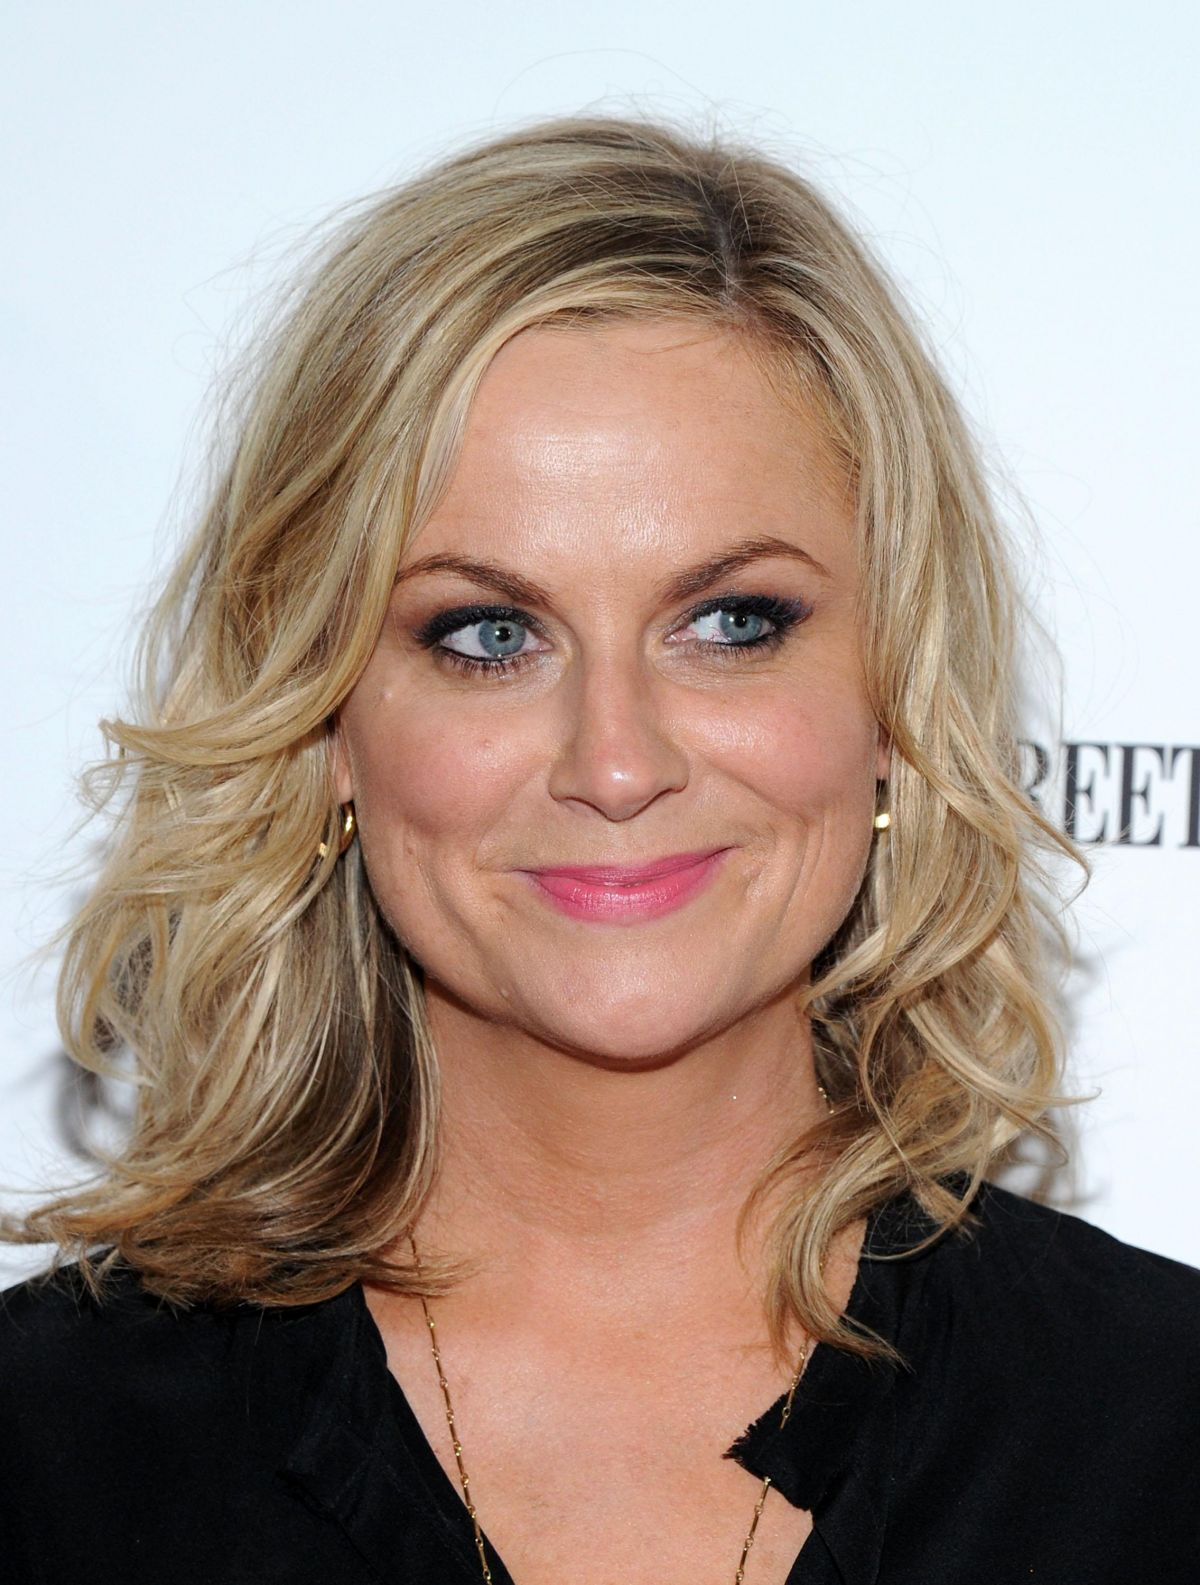 AMY POEHLER at They Came Together Screening in New York ...